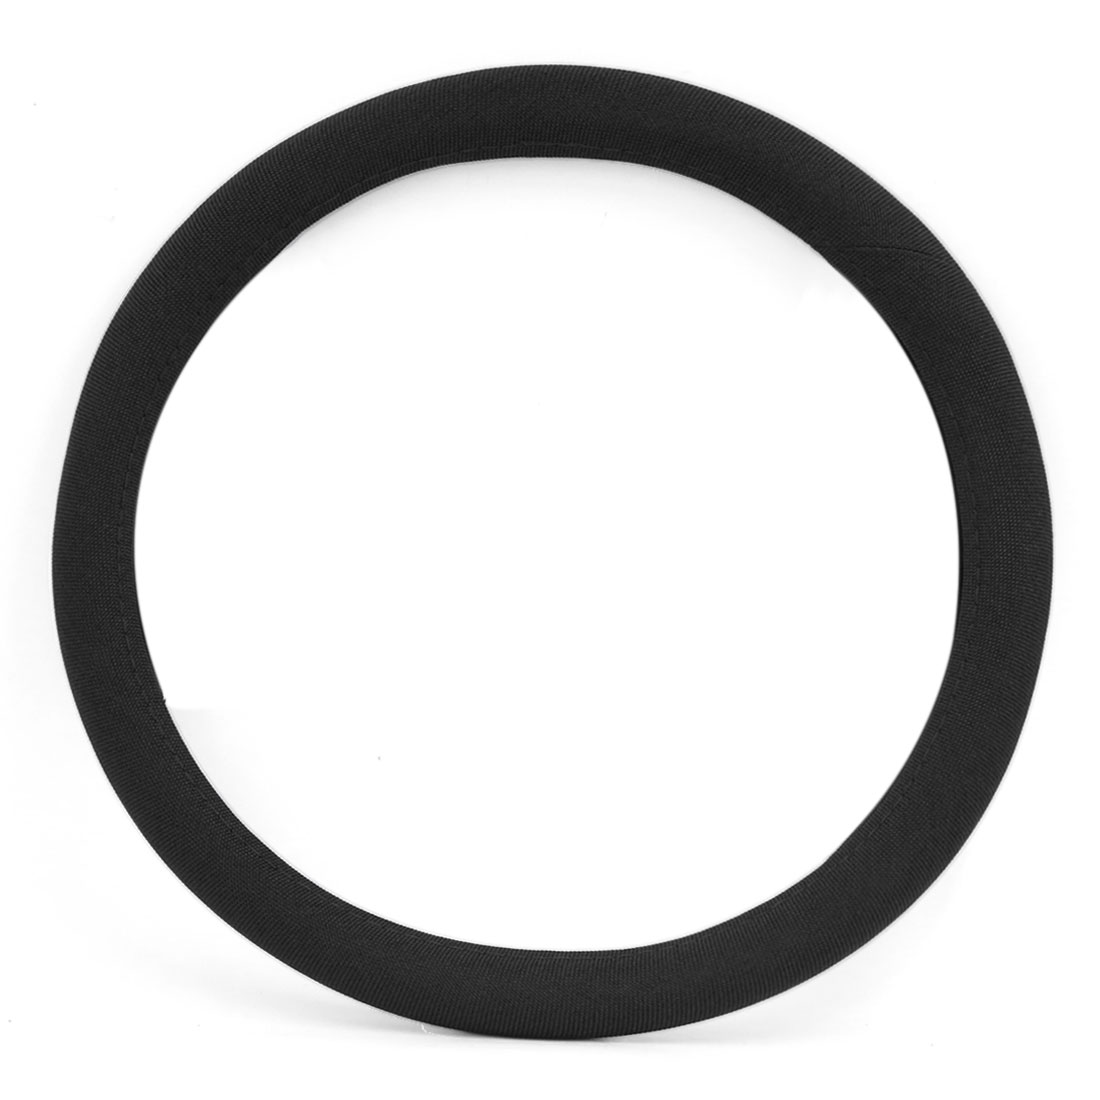 Universal Linen Standard Size Breathable Car Steering Wheel Cover 38cm Dia Black